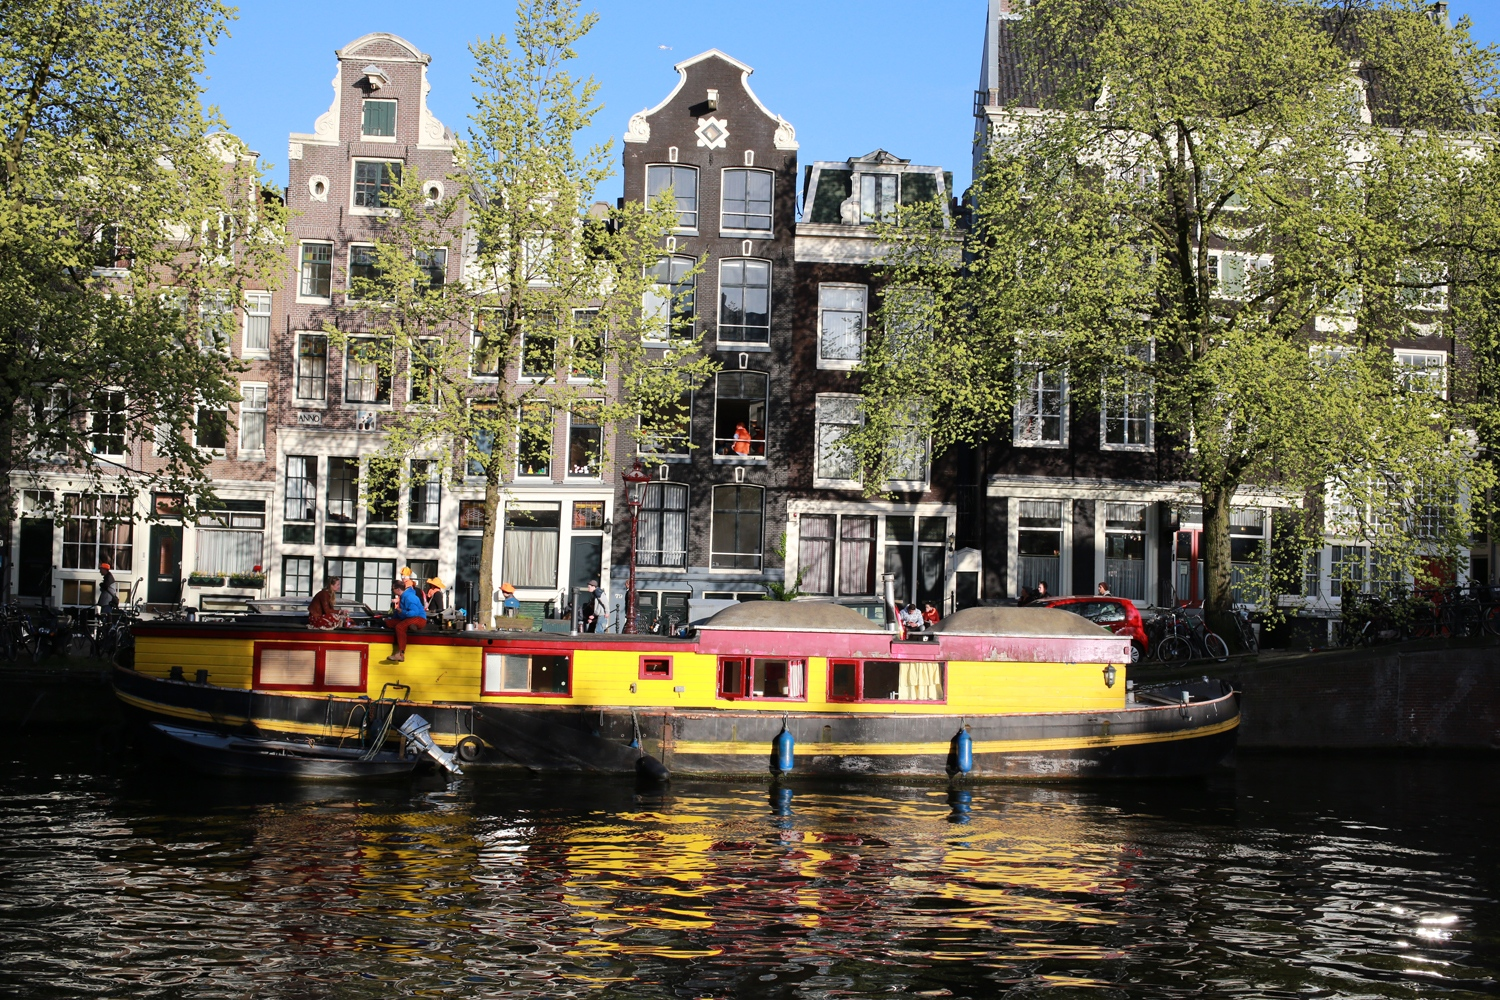 A young couple enjoy a glass of wine atop a house boat parked in one of the many channels around Amsterdam.